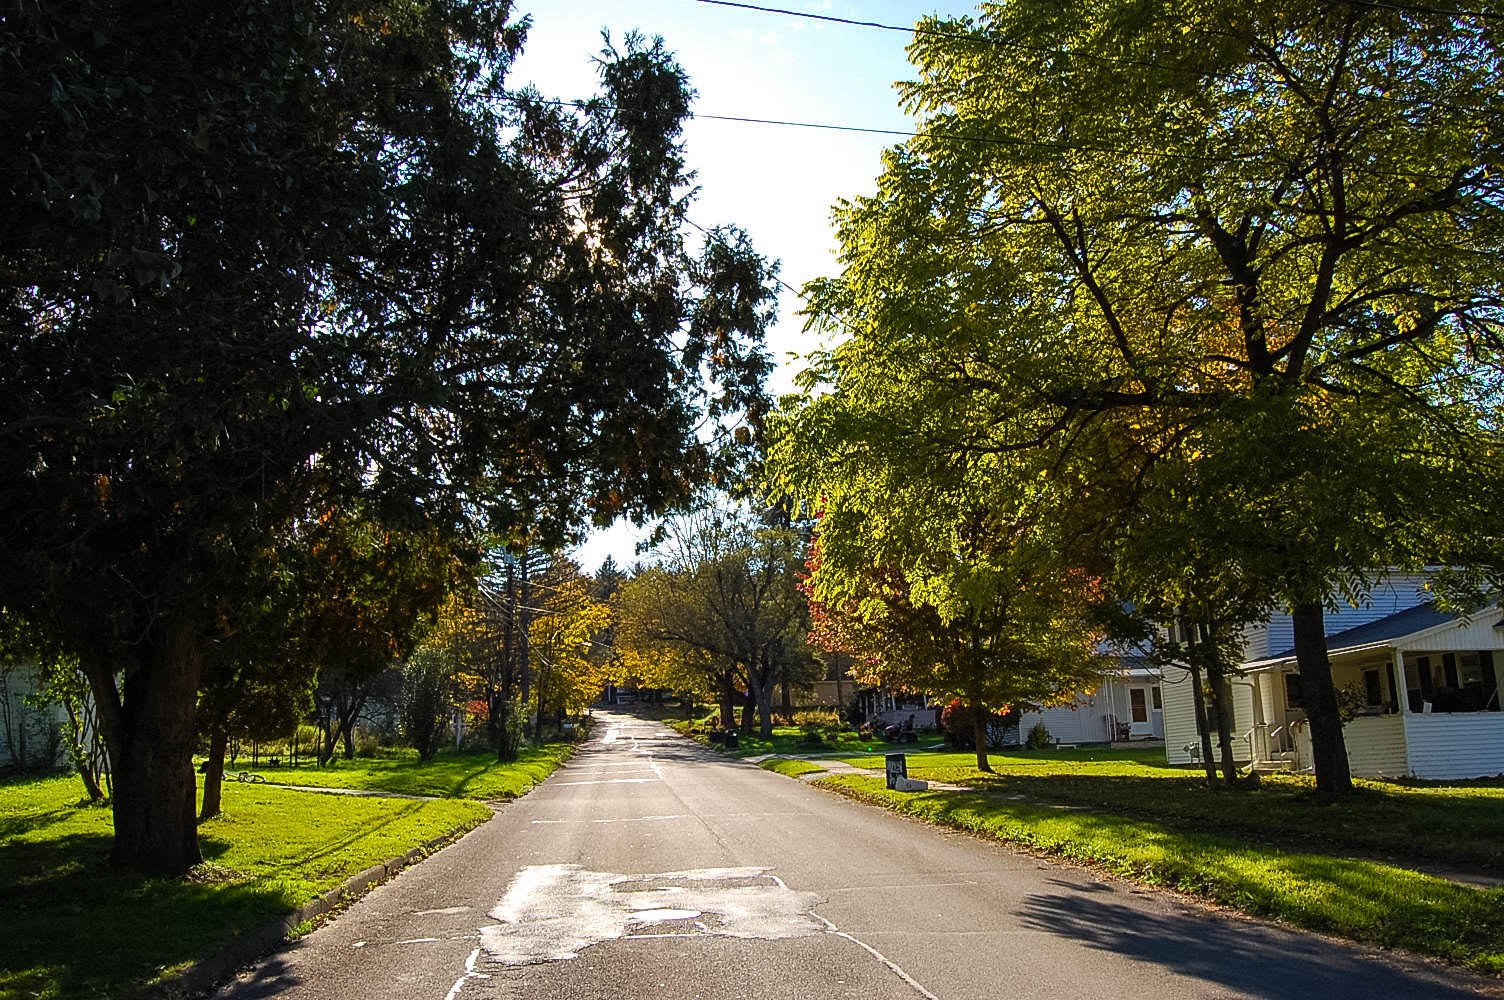 Discover the Beauty of Rural New York - Image 6